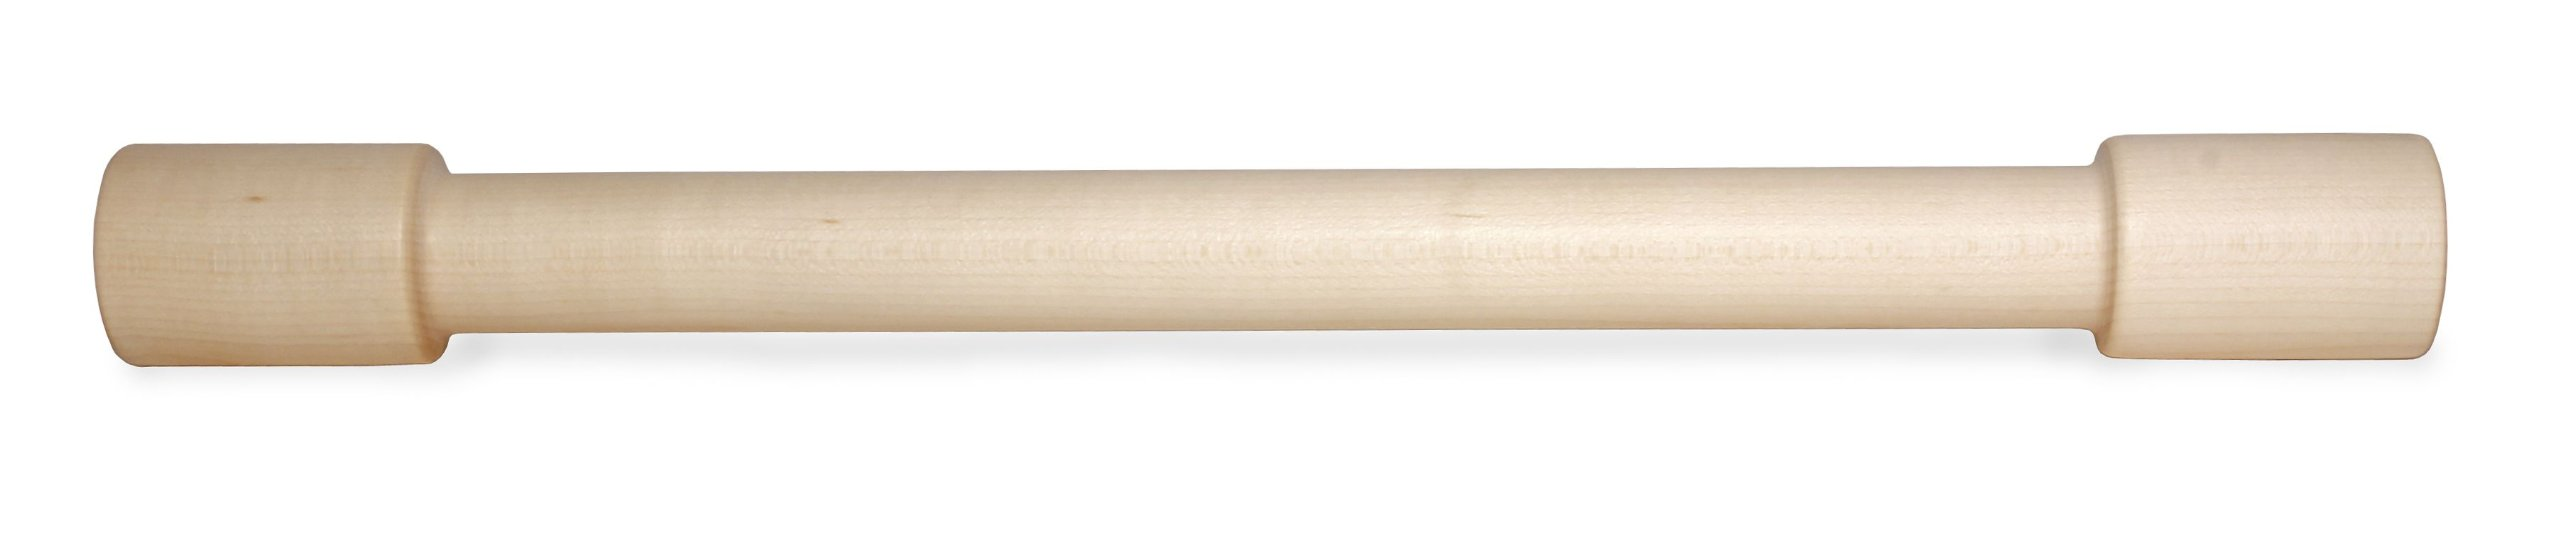 J.K. Adams Lovely Maple Wood Rolling Pin, 18-inches by 1-3/4-inches by 1/4-inches